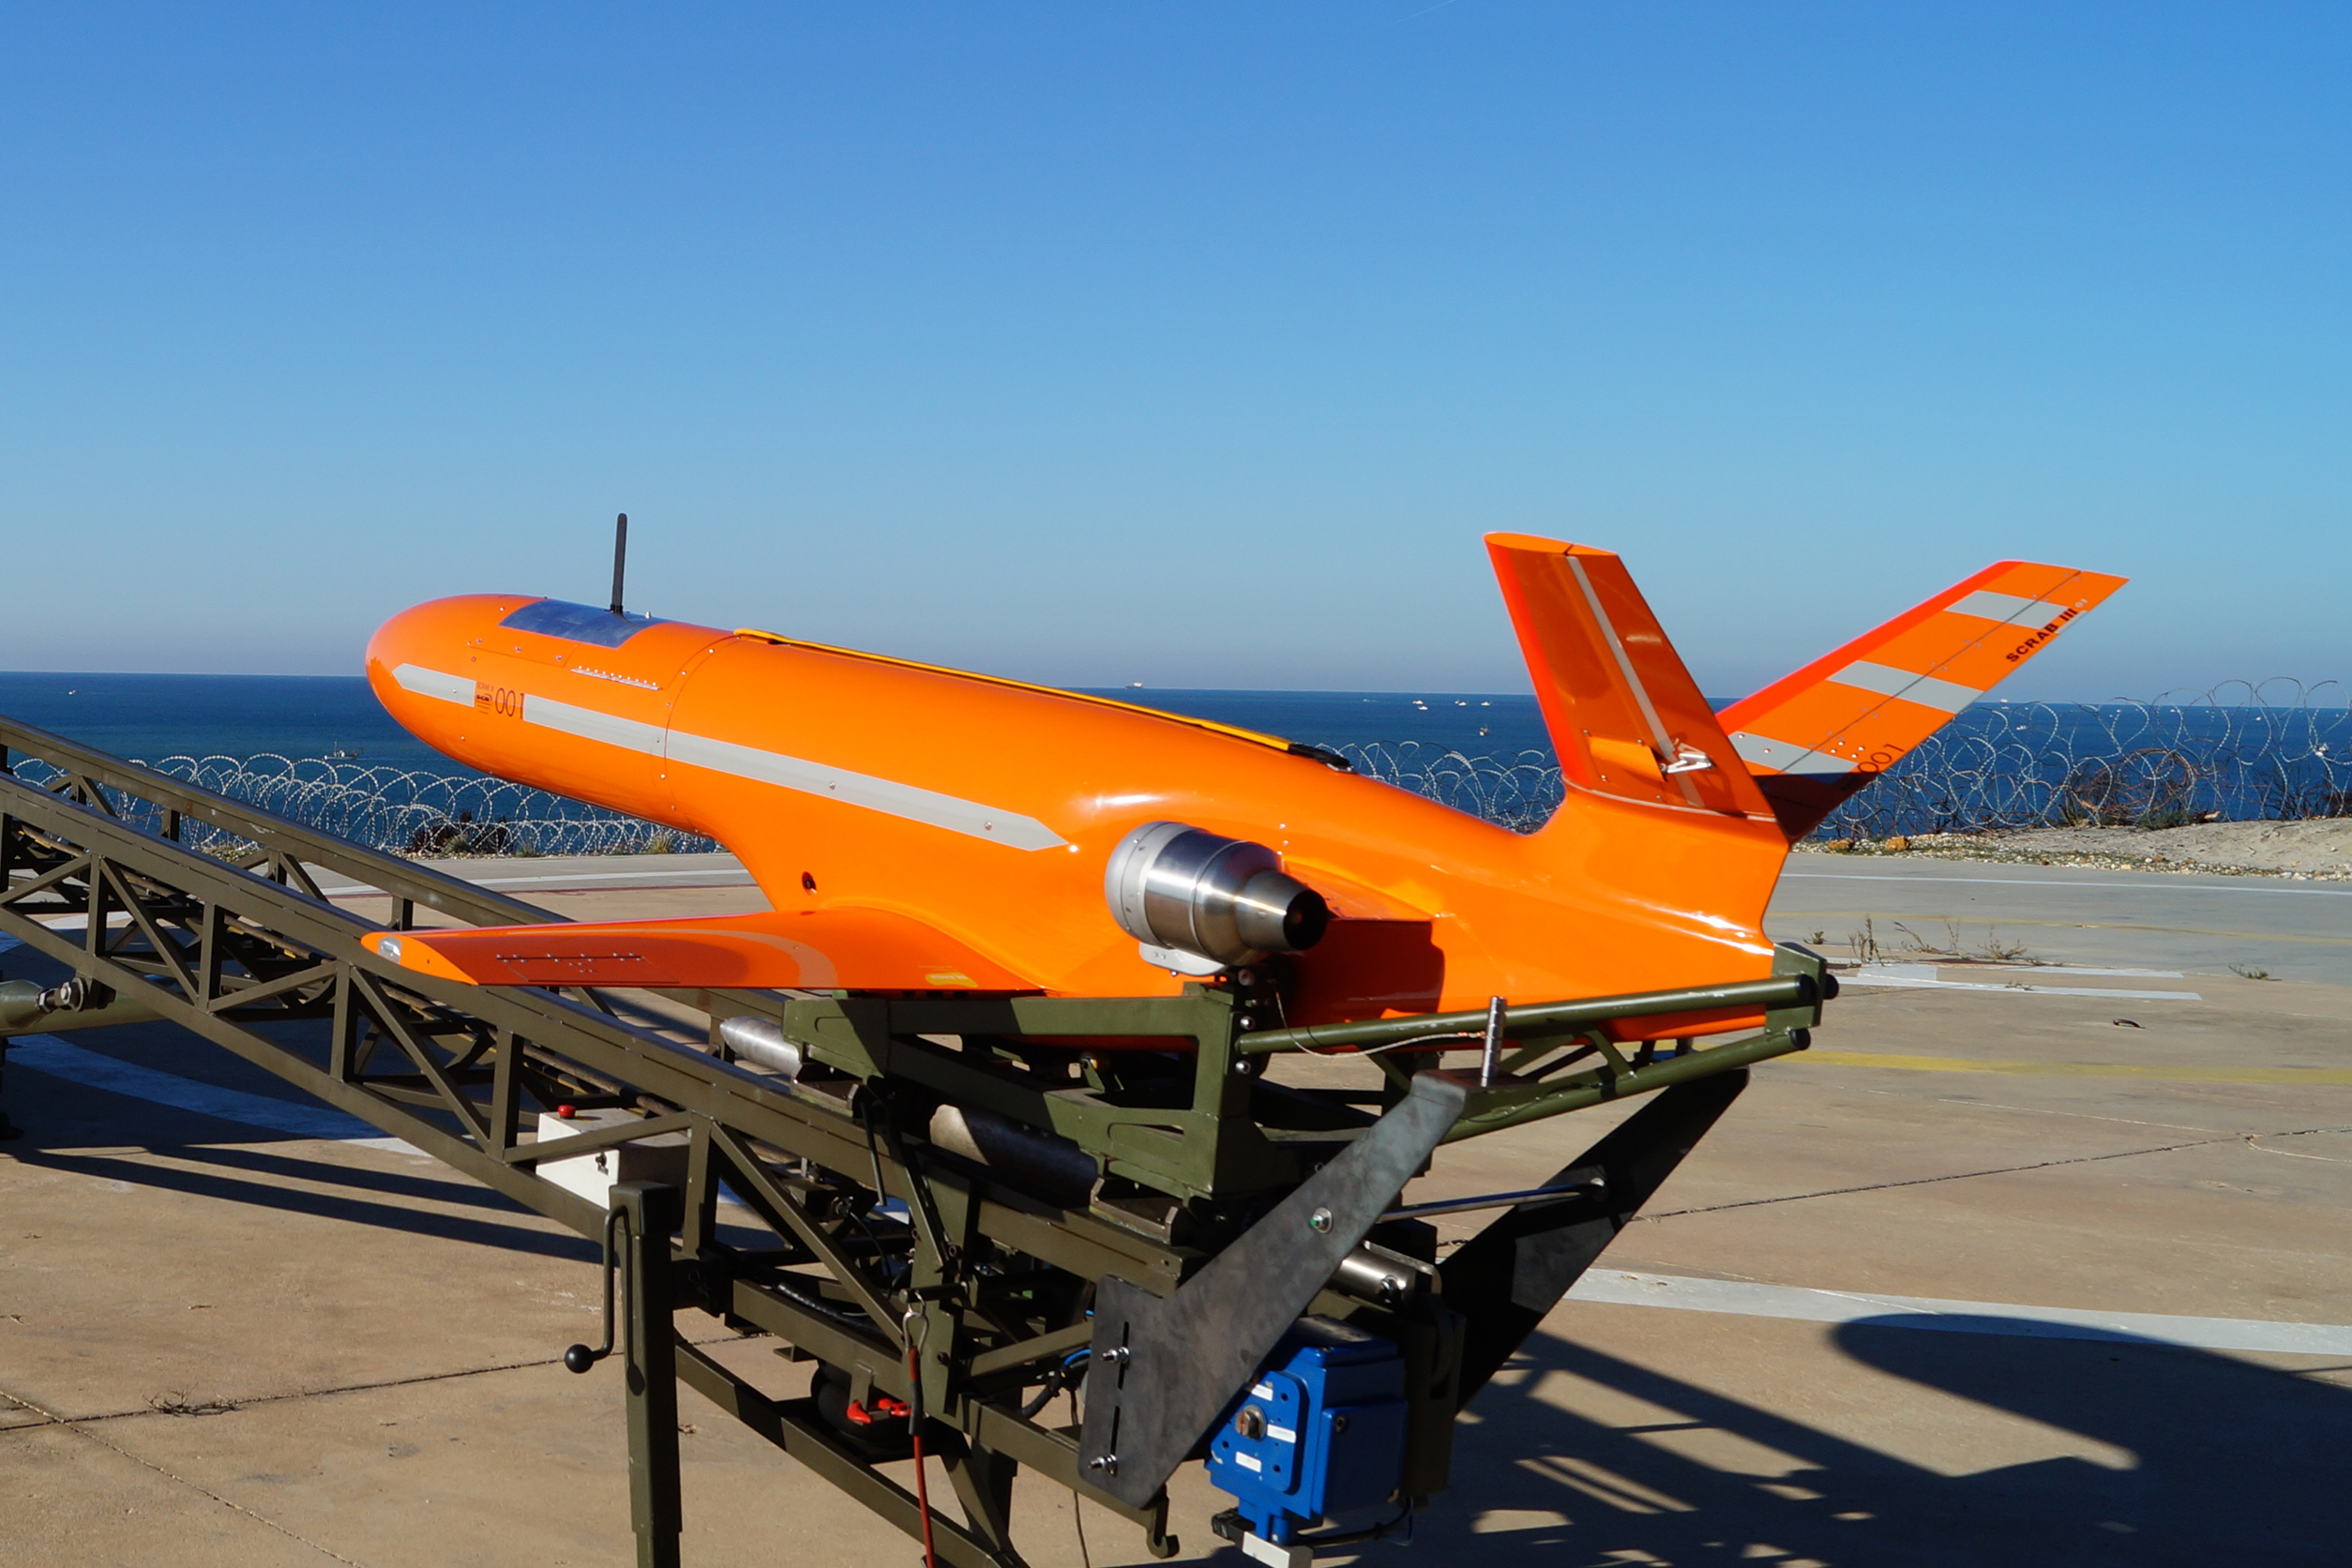 SCR-everis-ads-to-present-new-aerial-target-drone-SCRAB-III-FEINDEF